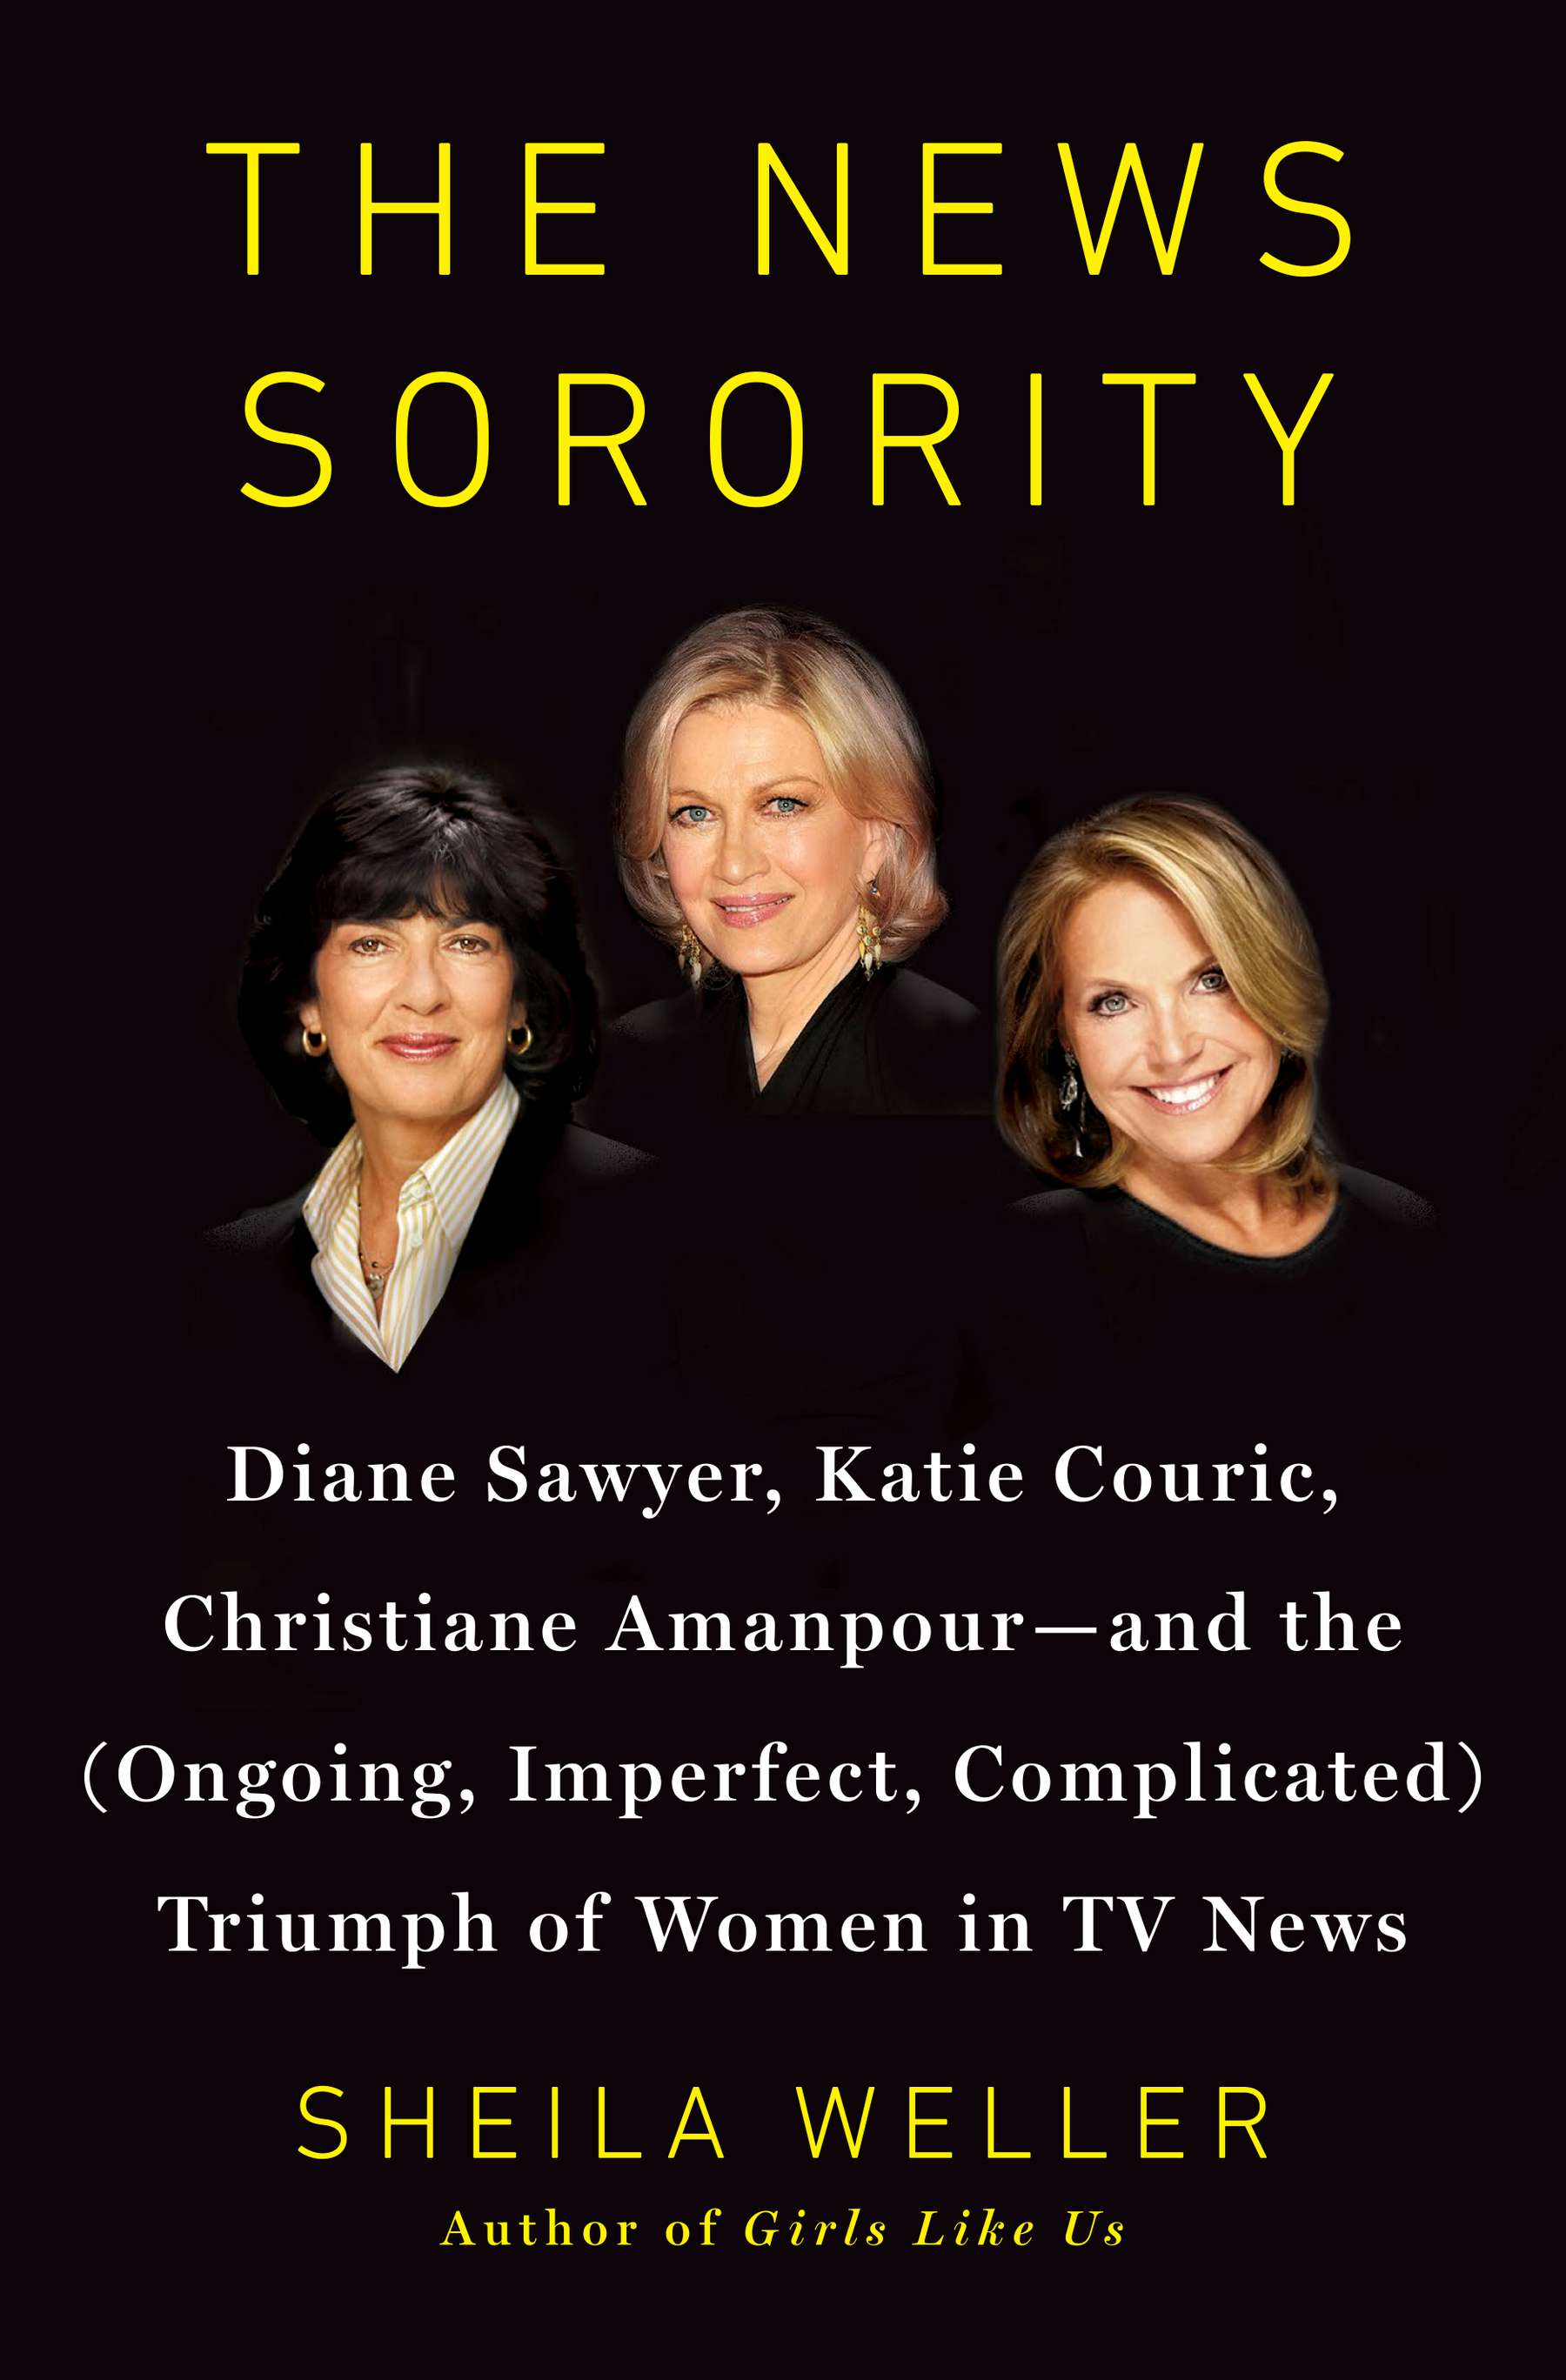 The News Sorority, by Sheila Weller